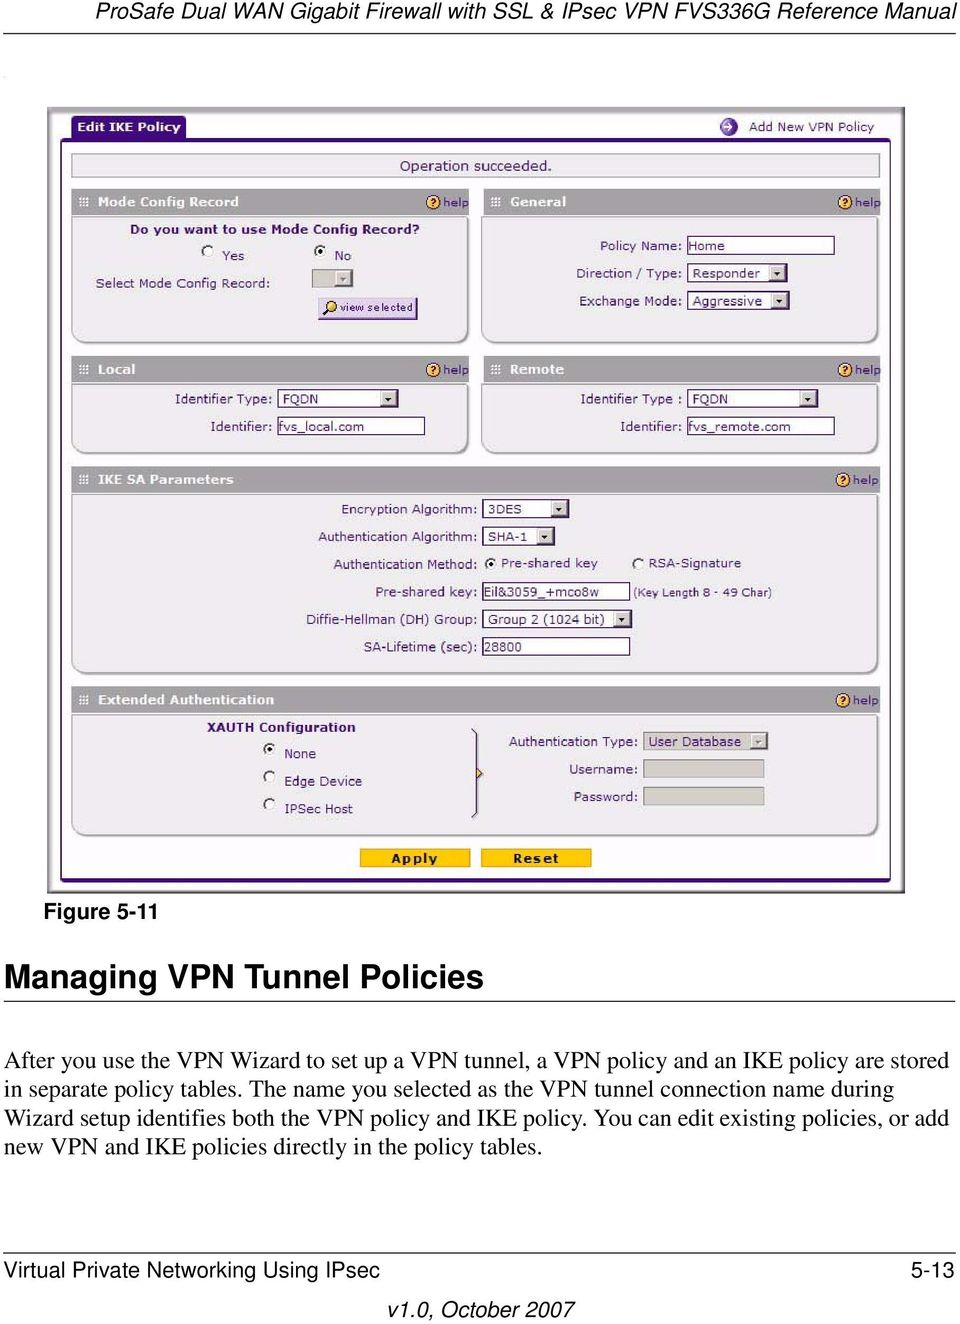 The name you selected as the VPN tunnel connection name during Wizard setup identifies both the VPN policy and IKE policy.